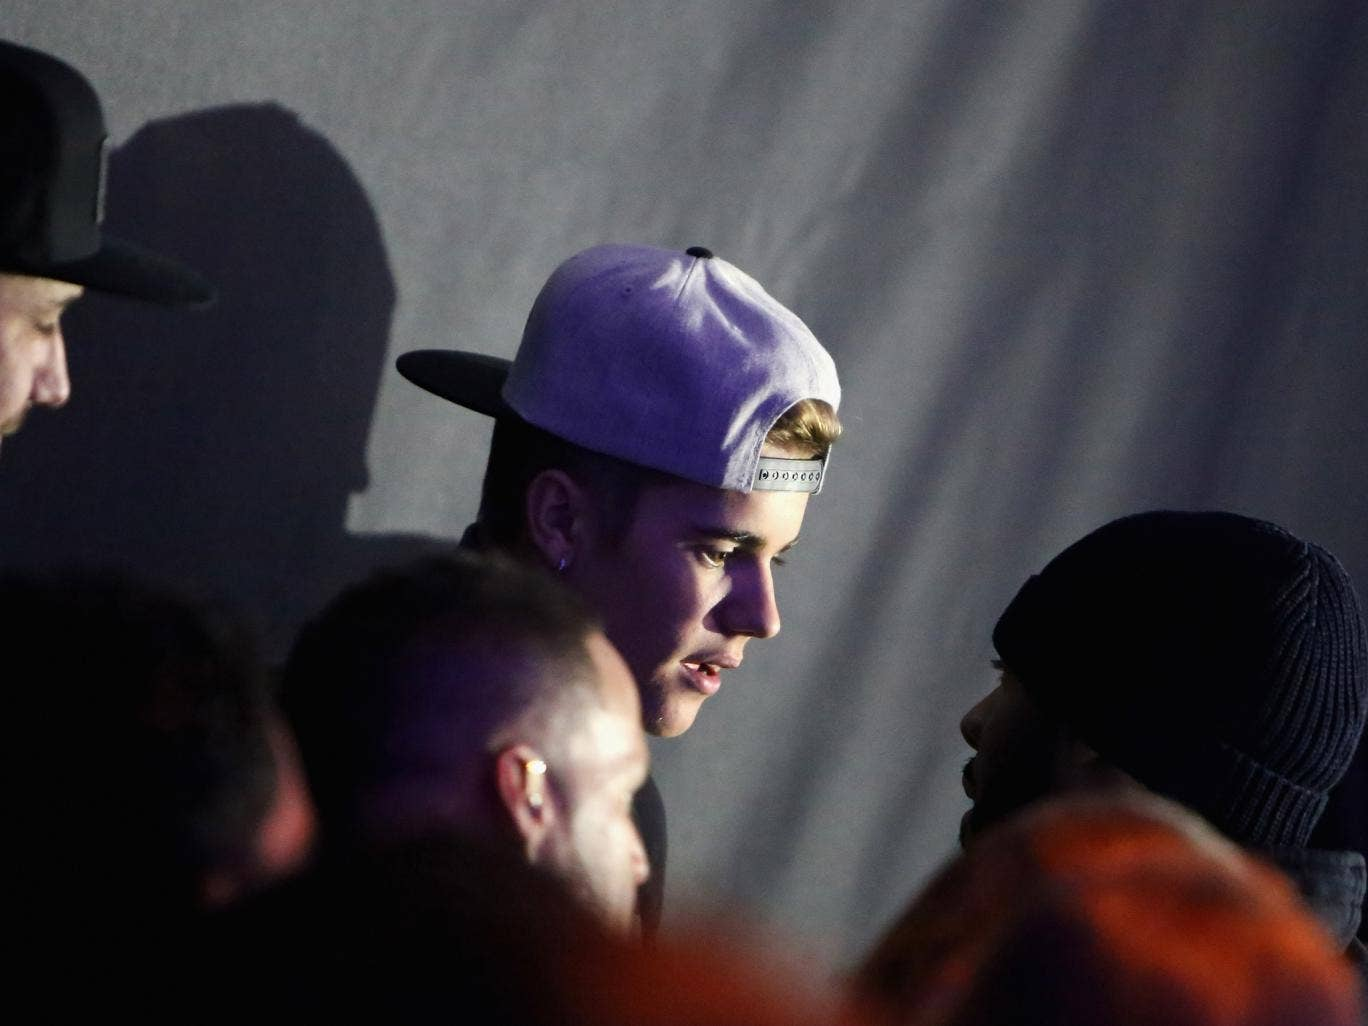 Justin Bieber pictured in New York yesterday. The search of his plane was undertaken after US customs officials believed they smelled marijuana on some of Bieber's entourage